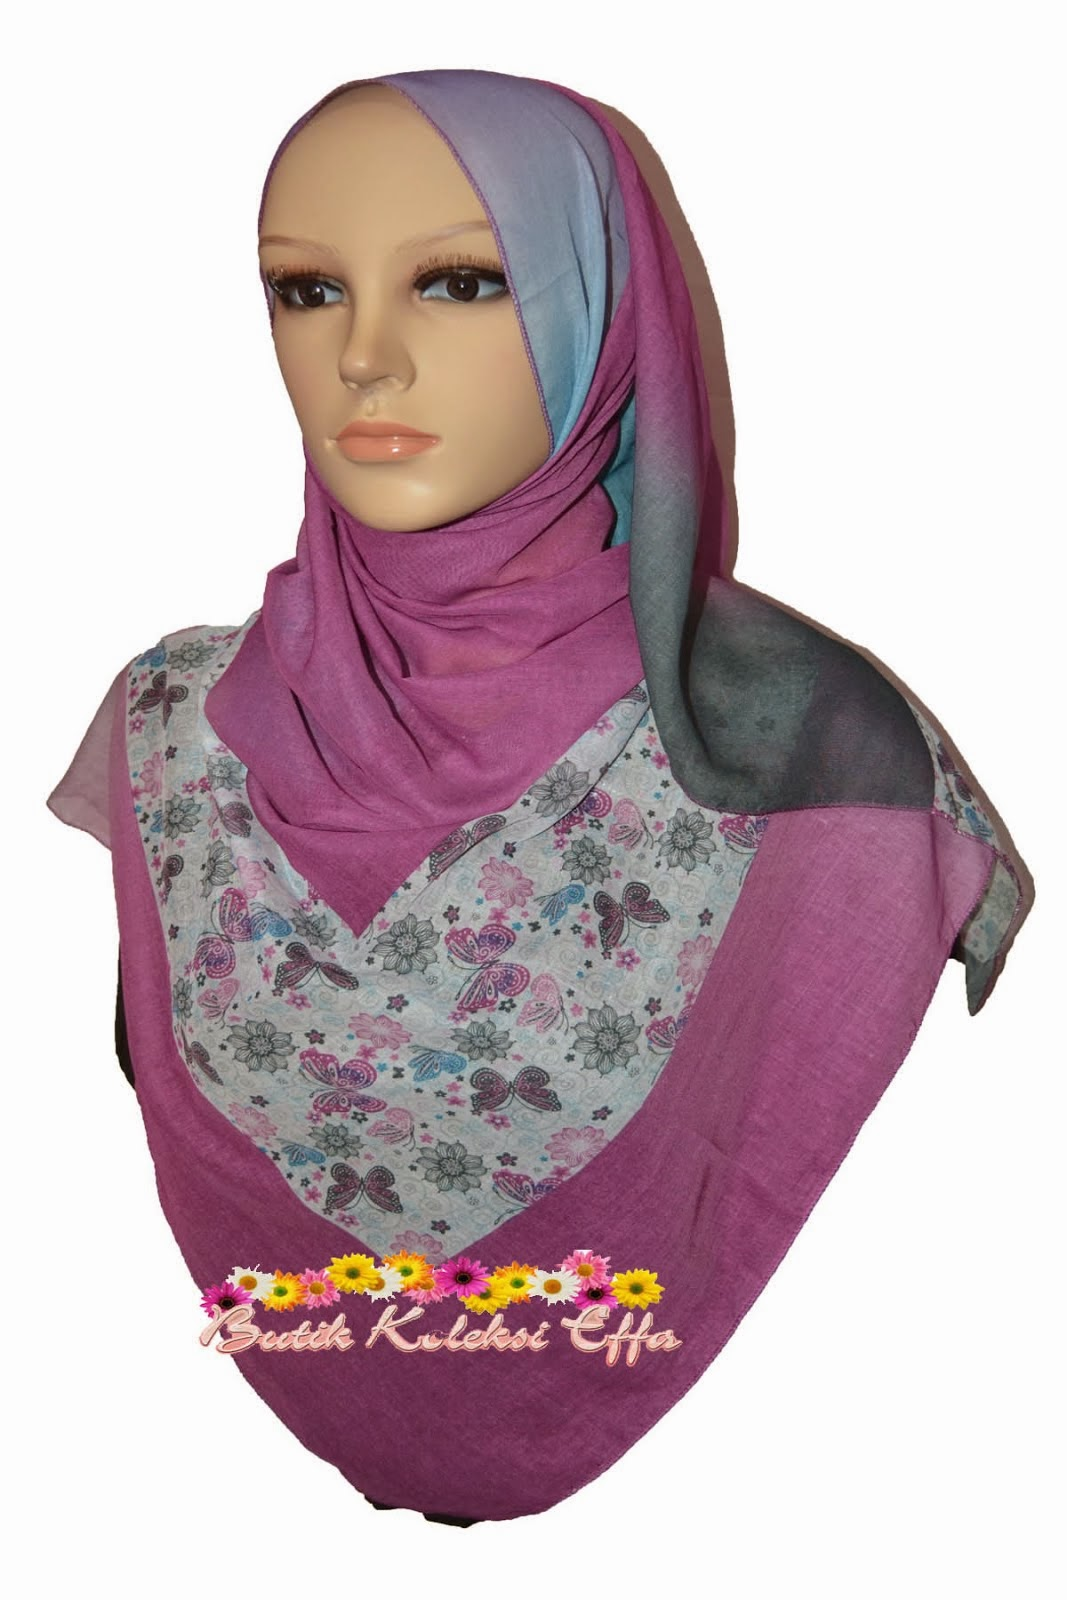 BAWAL BUTTERFLY